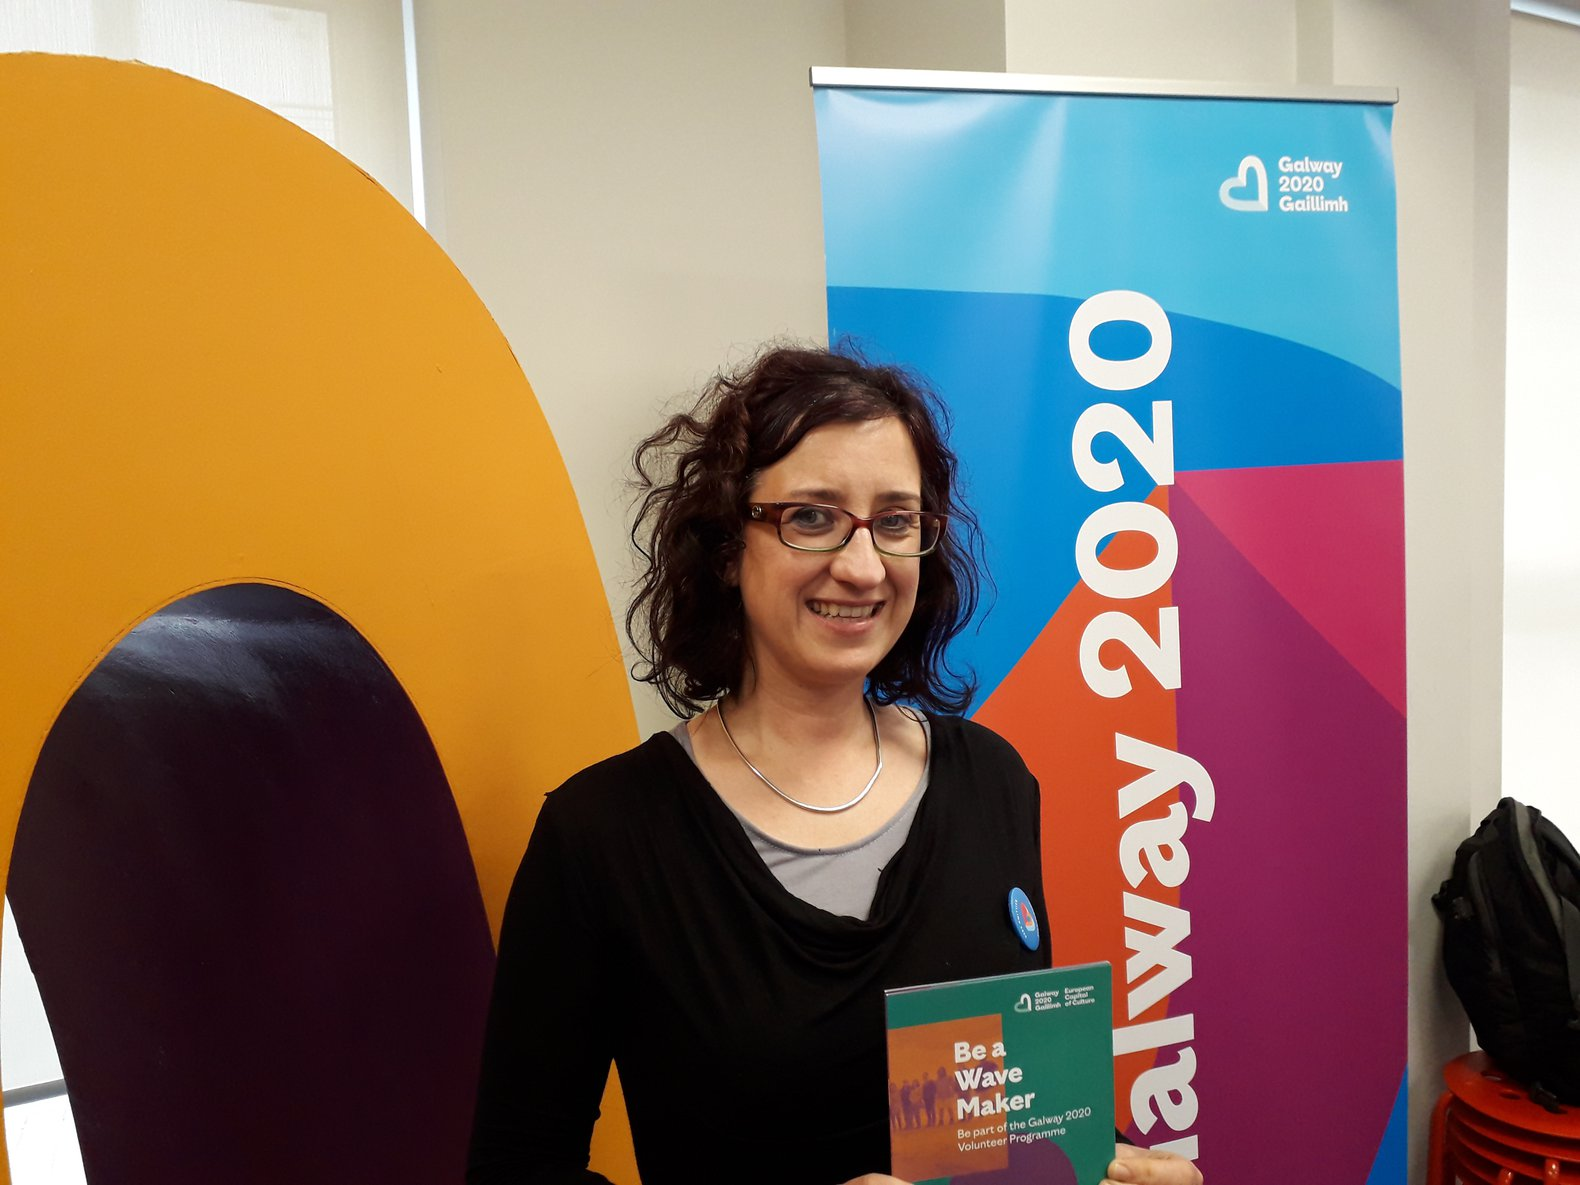 Elena Toniato, Volunteer Programme Development Manager, Galway 2020